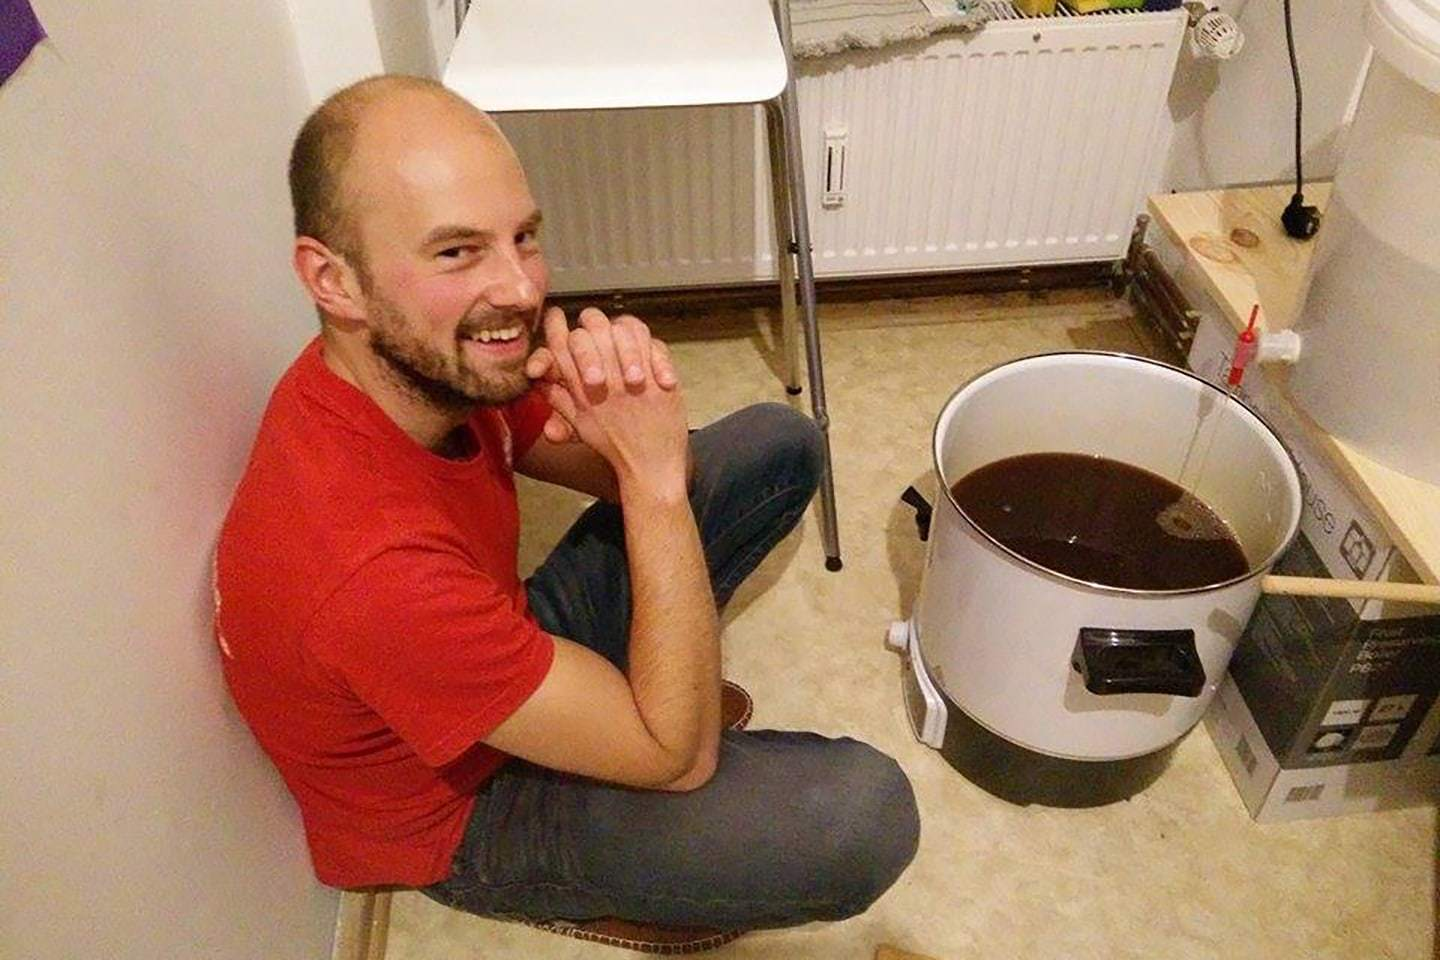 Lukasz of FUERST WIACEK and the Glühweinkocher during a homebrew session